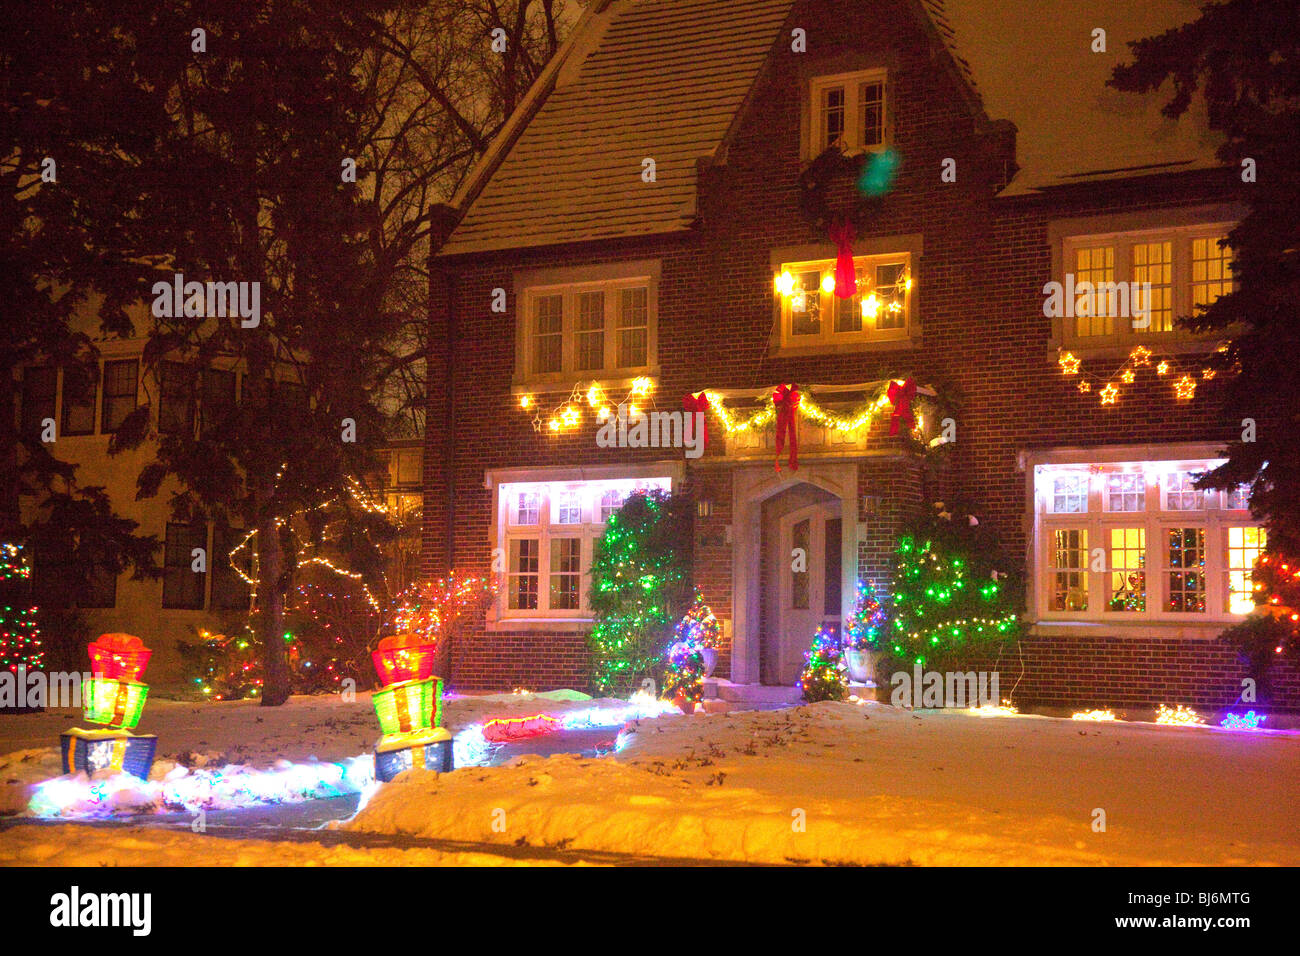 House Decorated With Outdoor Christmas Lights At Night St Paul